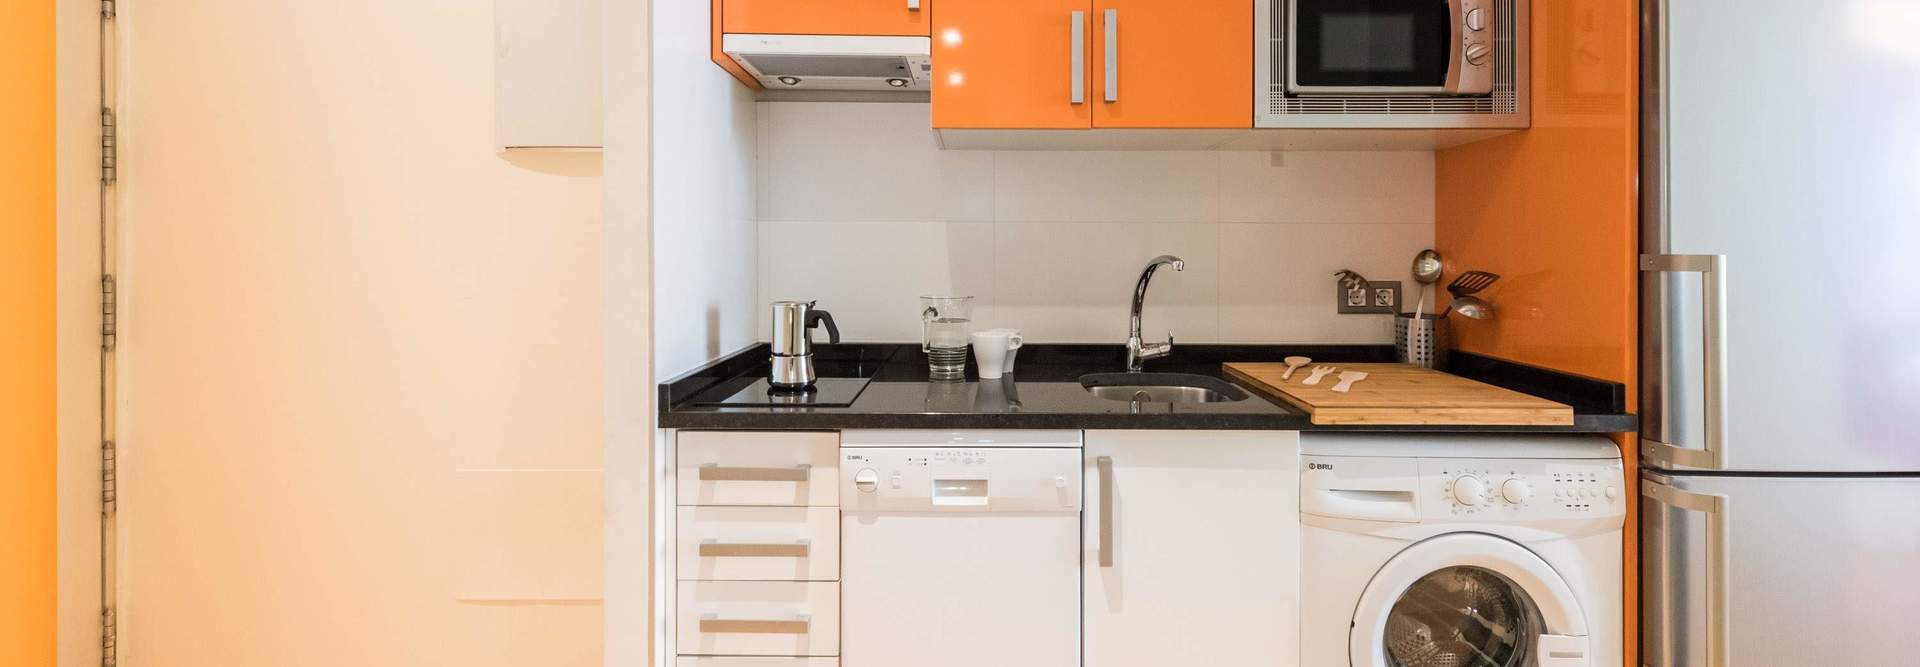 Home alquiler apartamento madrid centro mad4rent  26